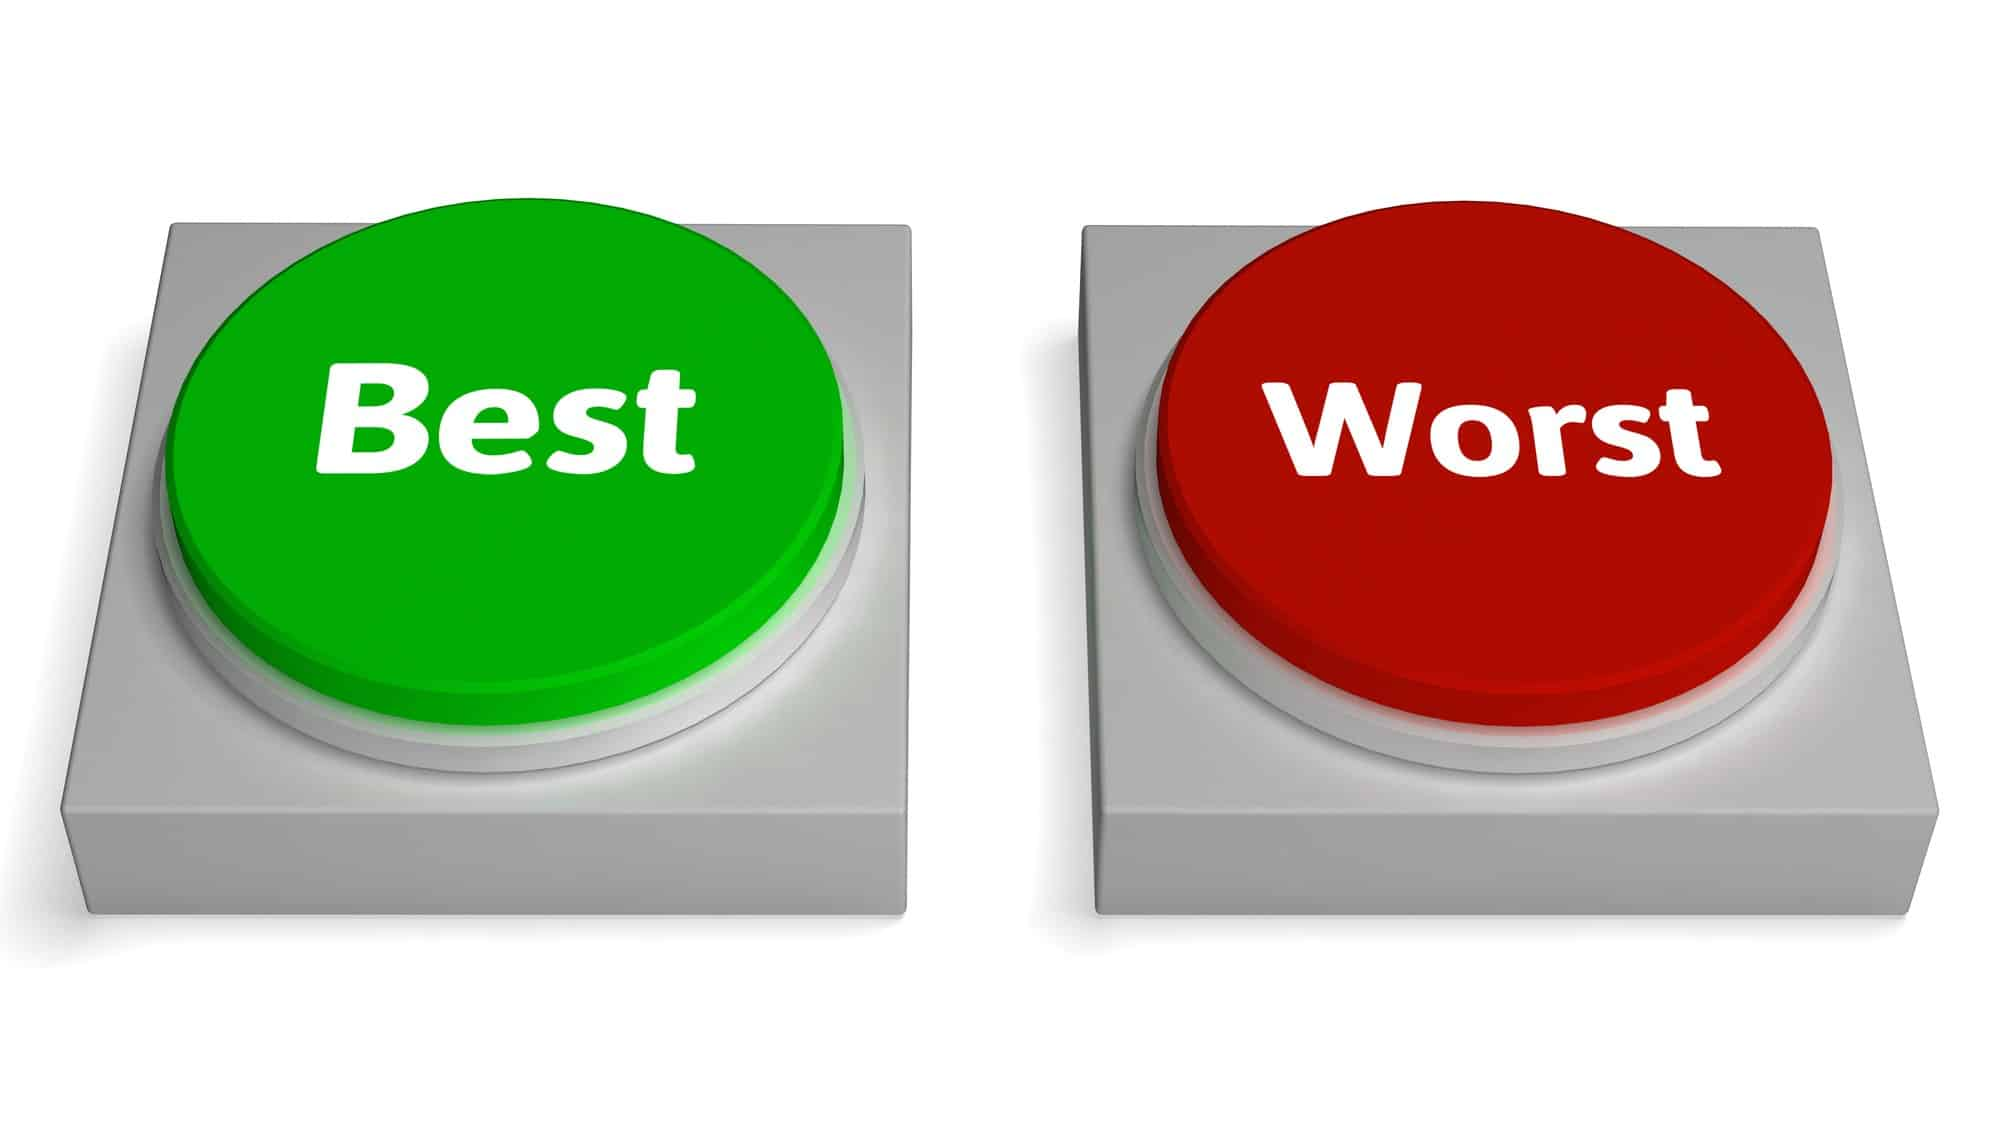 best and worse asx shares represented by green best button and red worst button